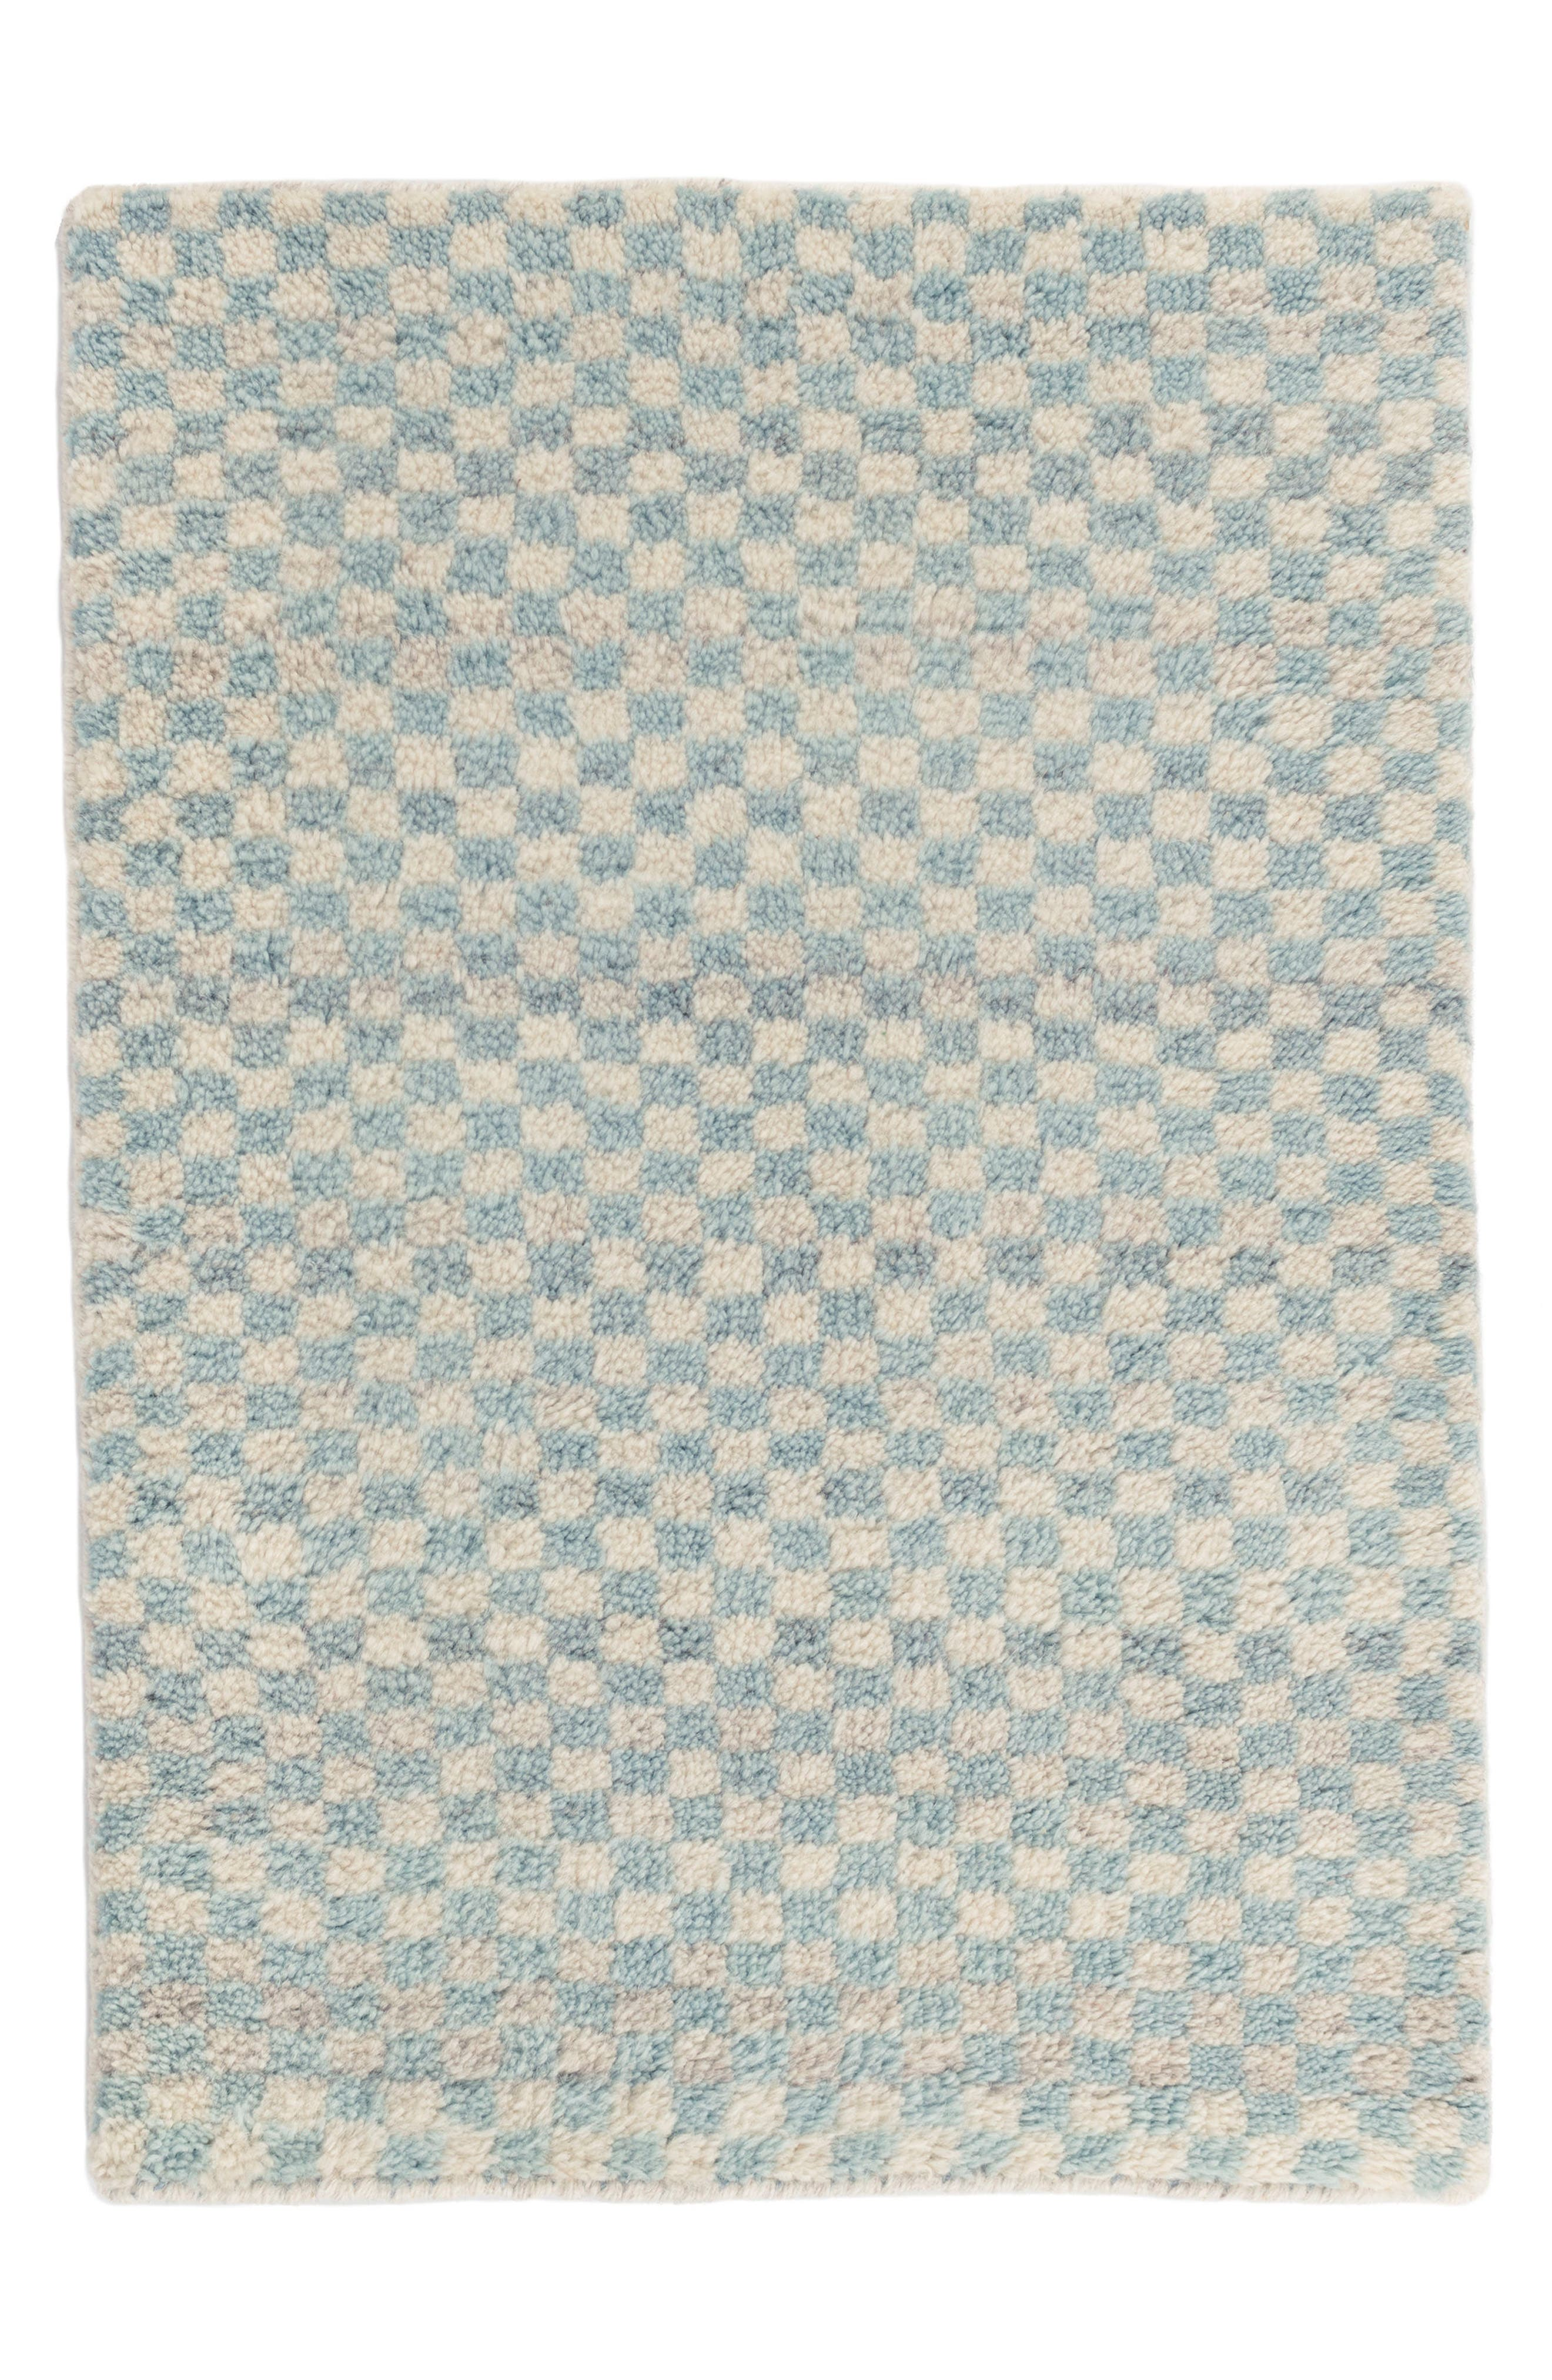 Citra Hand Knotted Rug,                             Main thumbnail 1, color,                             400